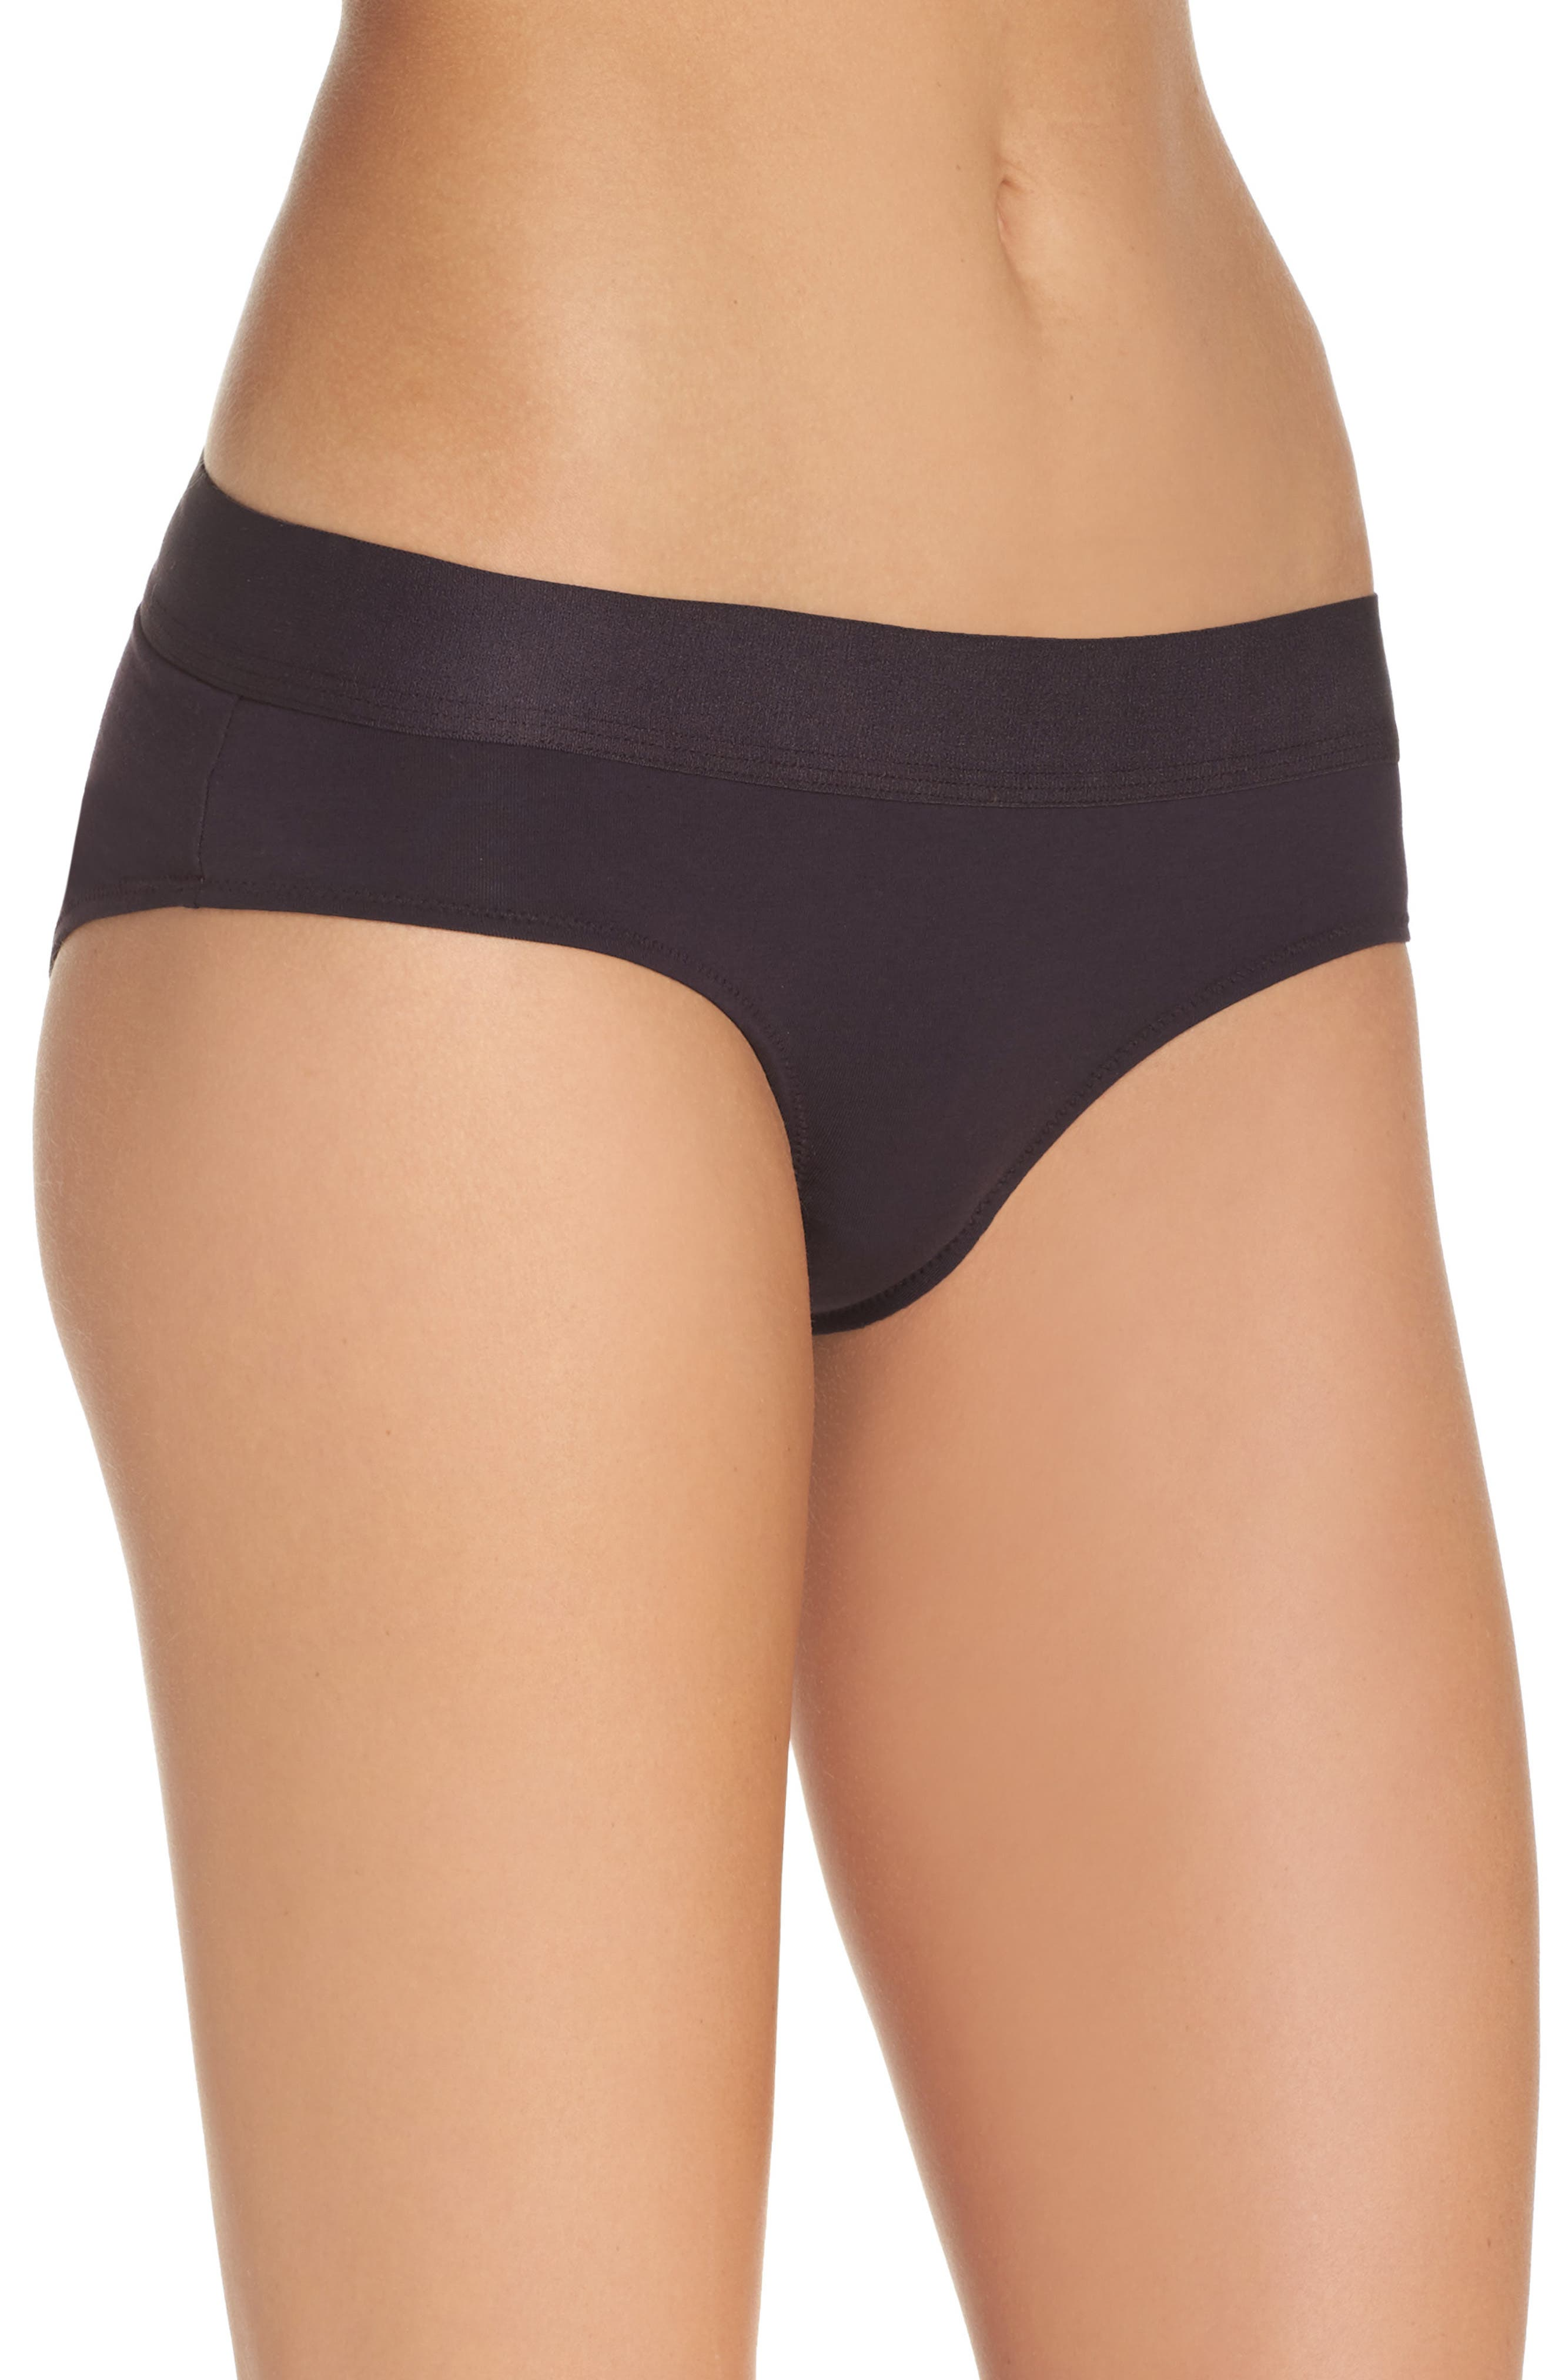 Hadlee Hipster Briefs,                             Alternate thumbnail 8, color,